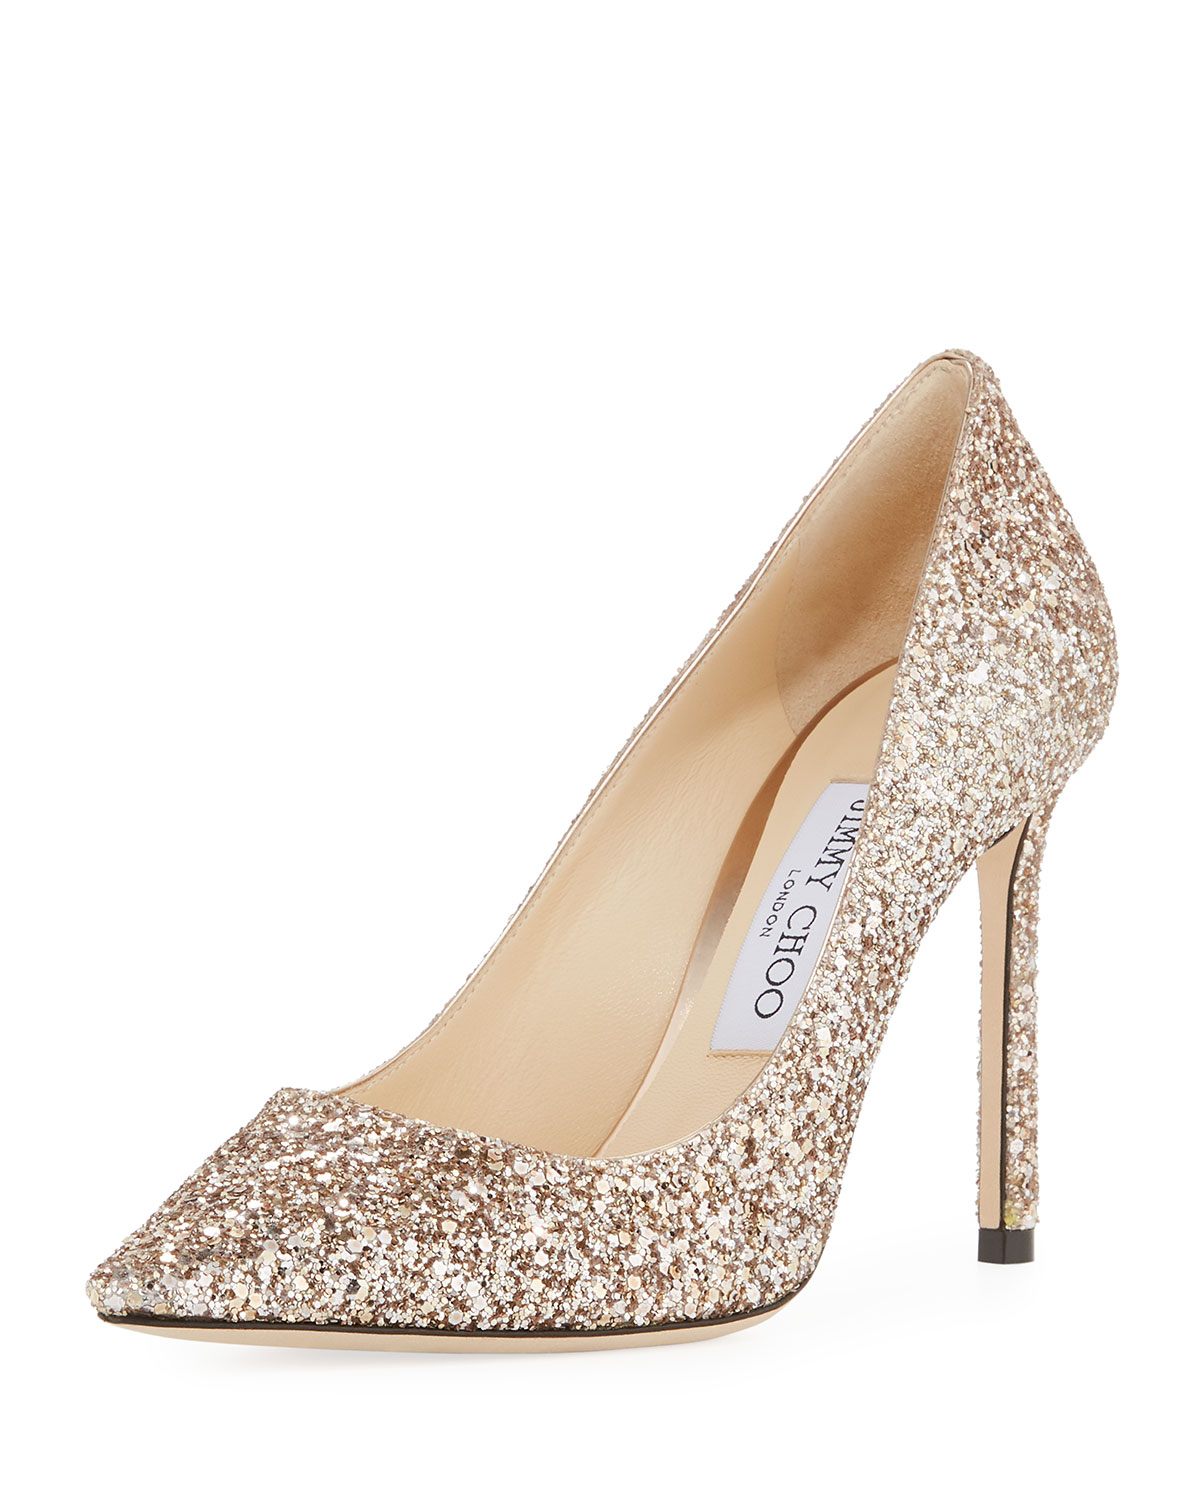 Jimmy Choo Romy 100mm Shadow Coarse Glitter Pointed-Toe Pumps | Neiman Marcus